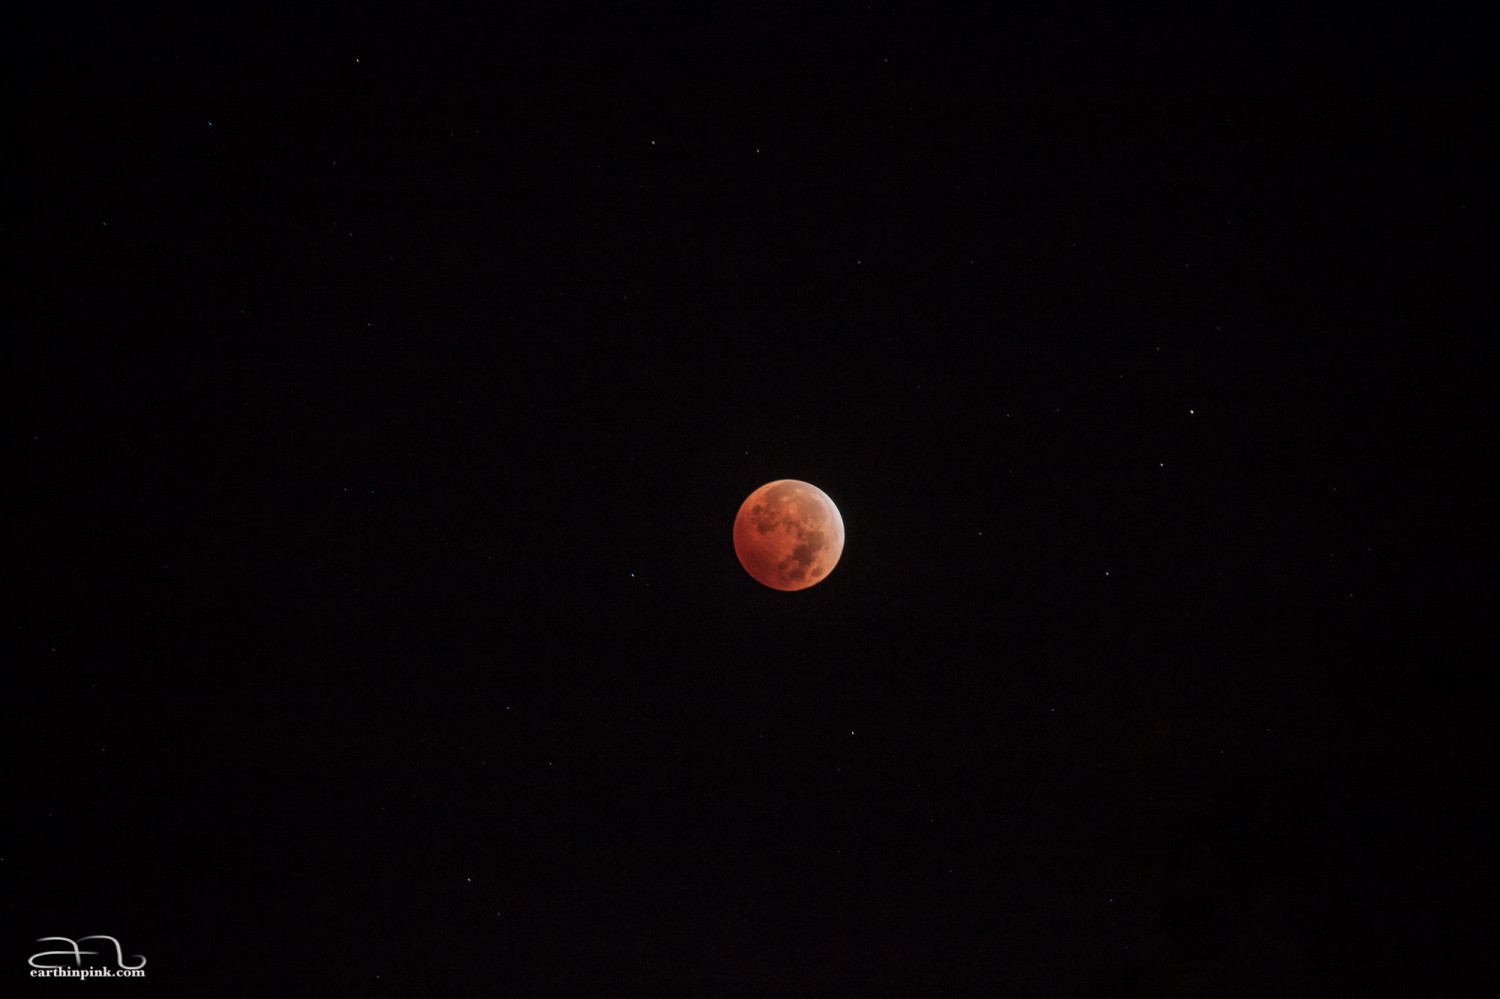 Total lunar eclipse on October 8th, 2014.